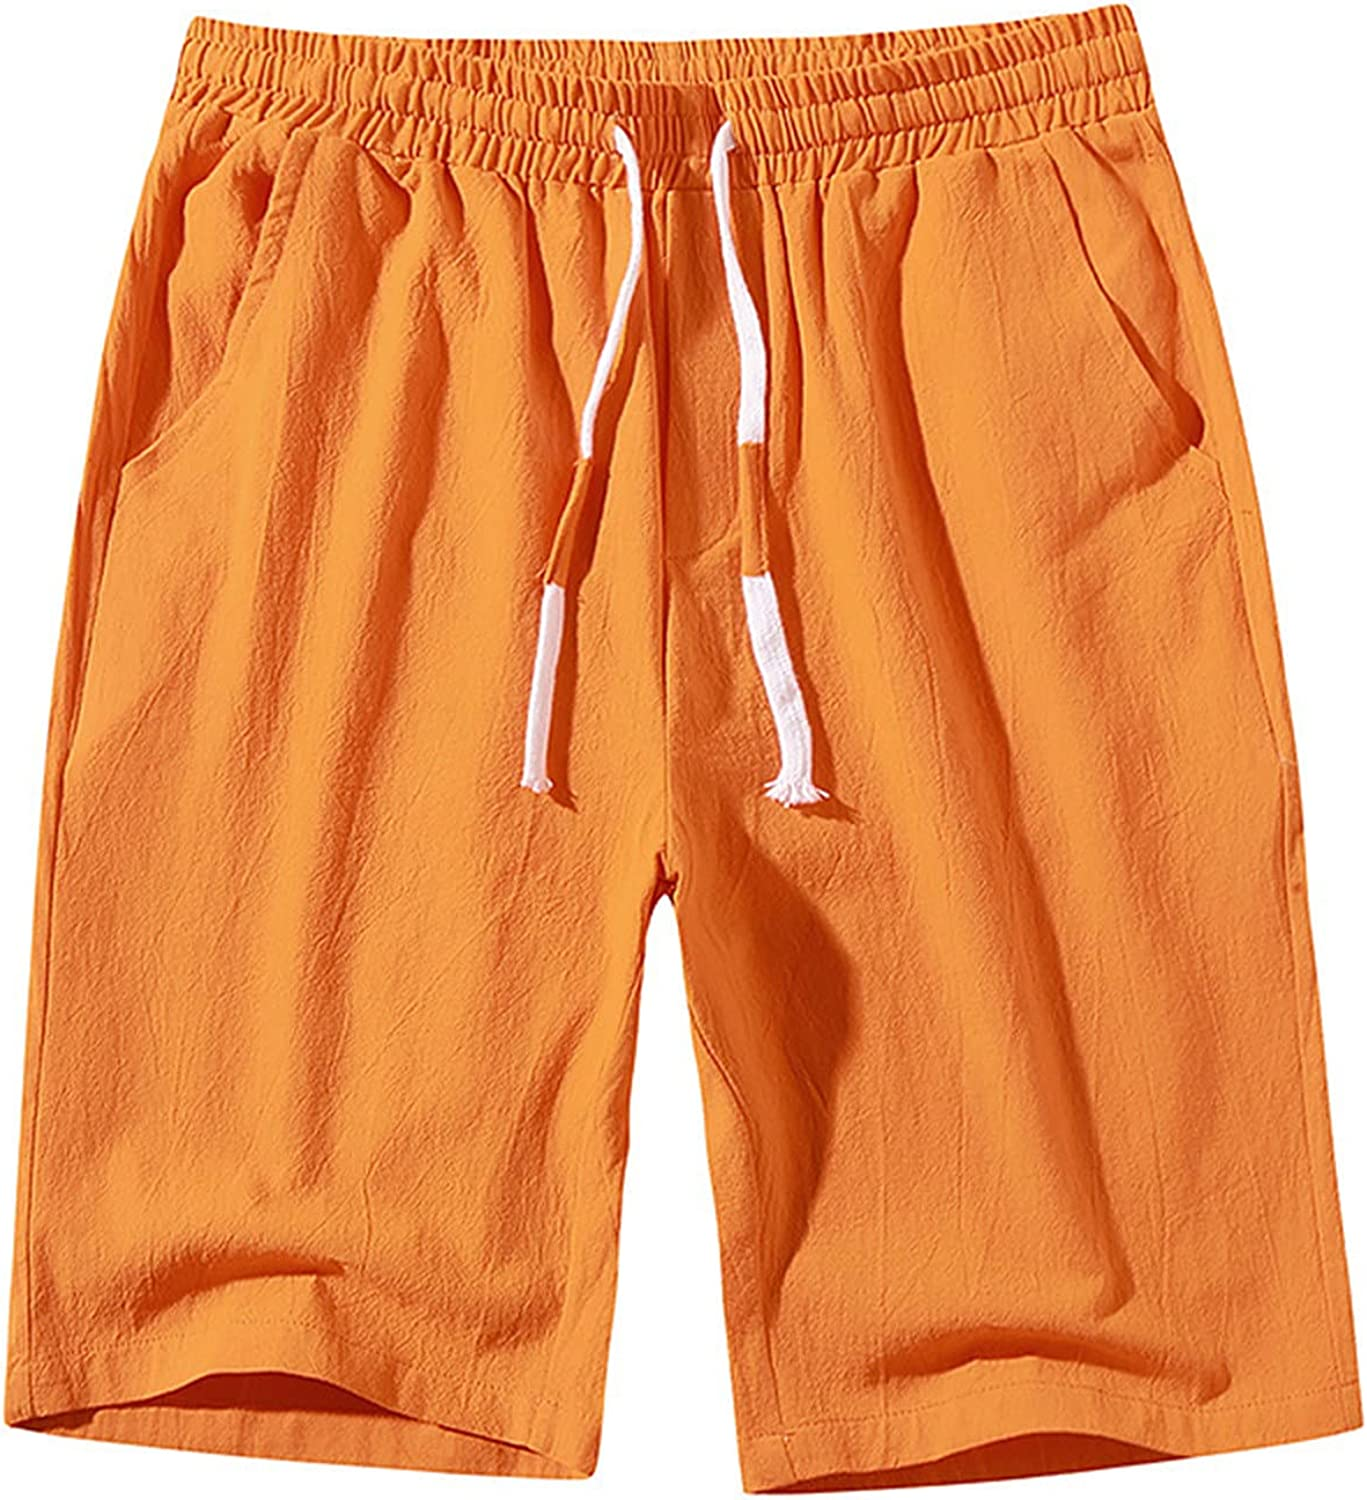 Men's Shorts Casual Classic Fit Drawstring Summer Beach Shorts with Elastic Waist and Pockets Leisure Cotton Shorts